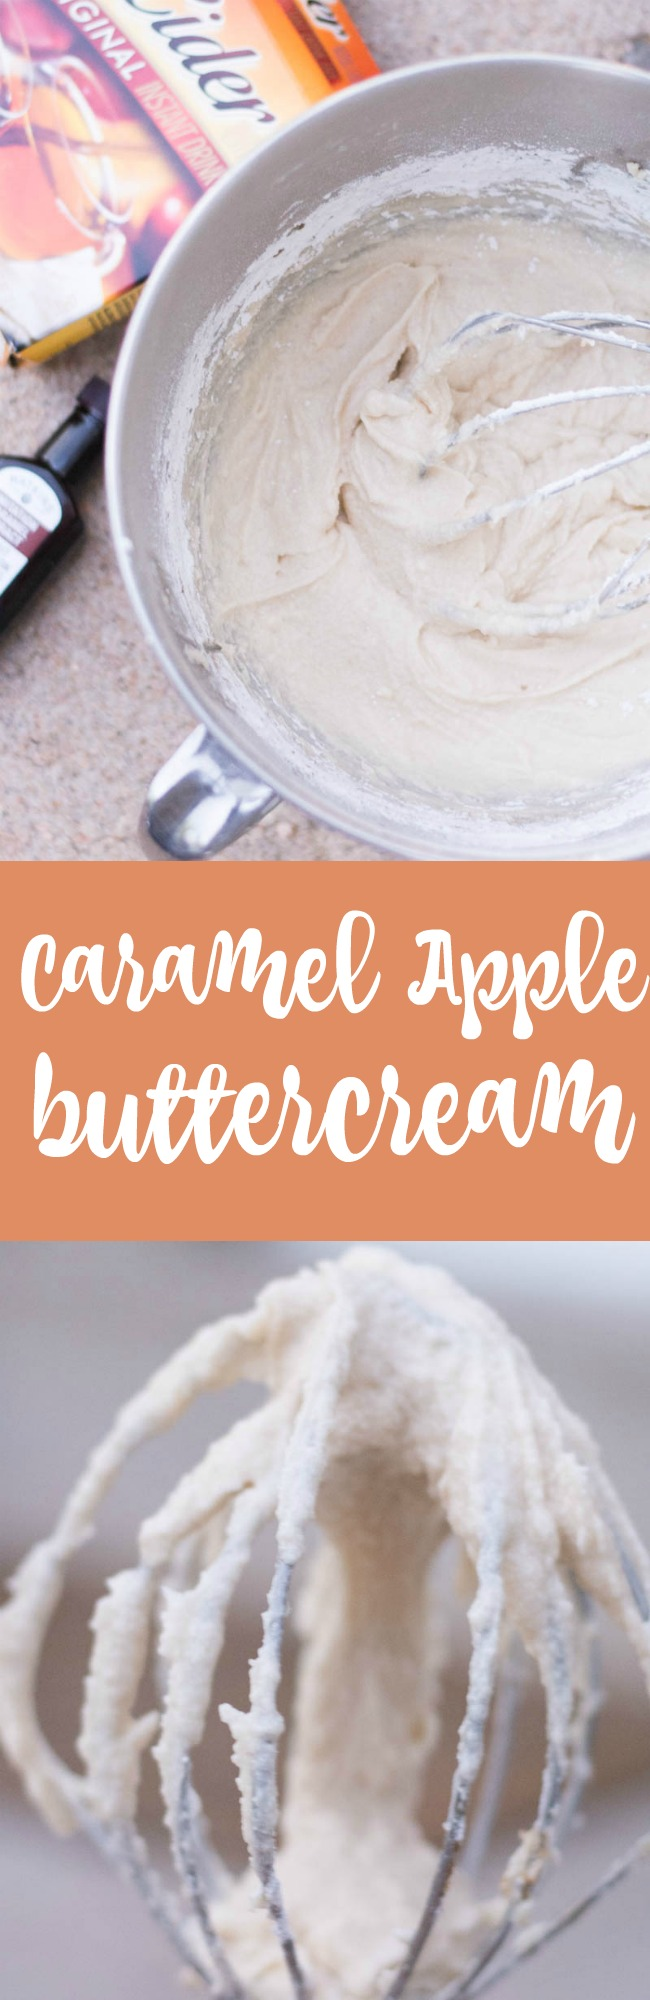 caramel-apple-buttercream